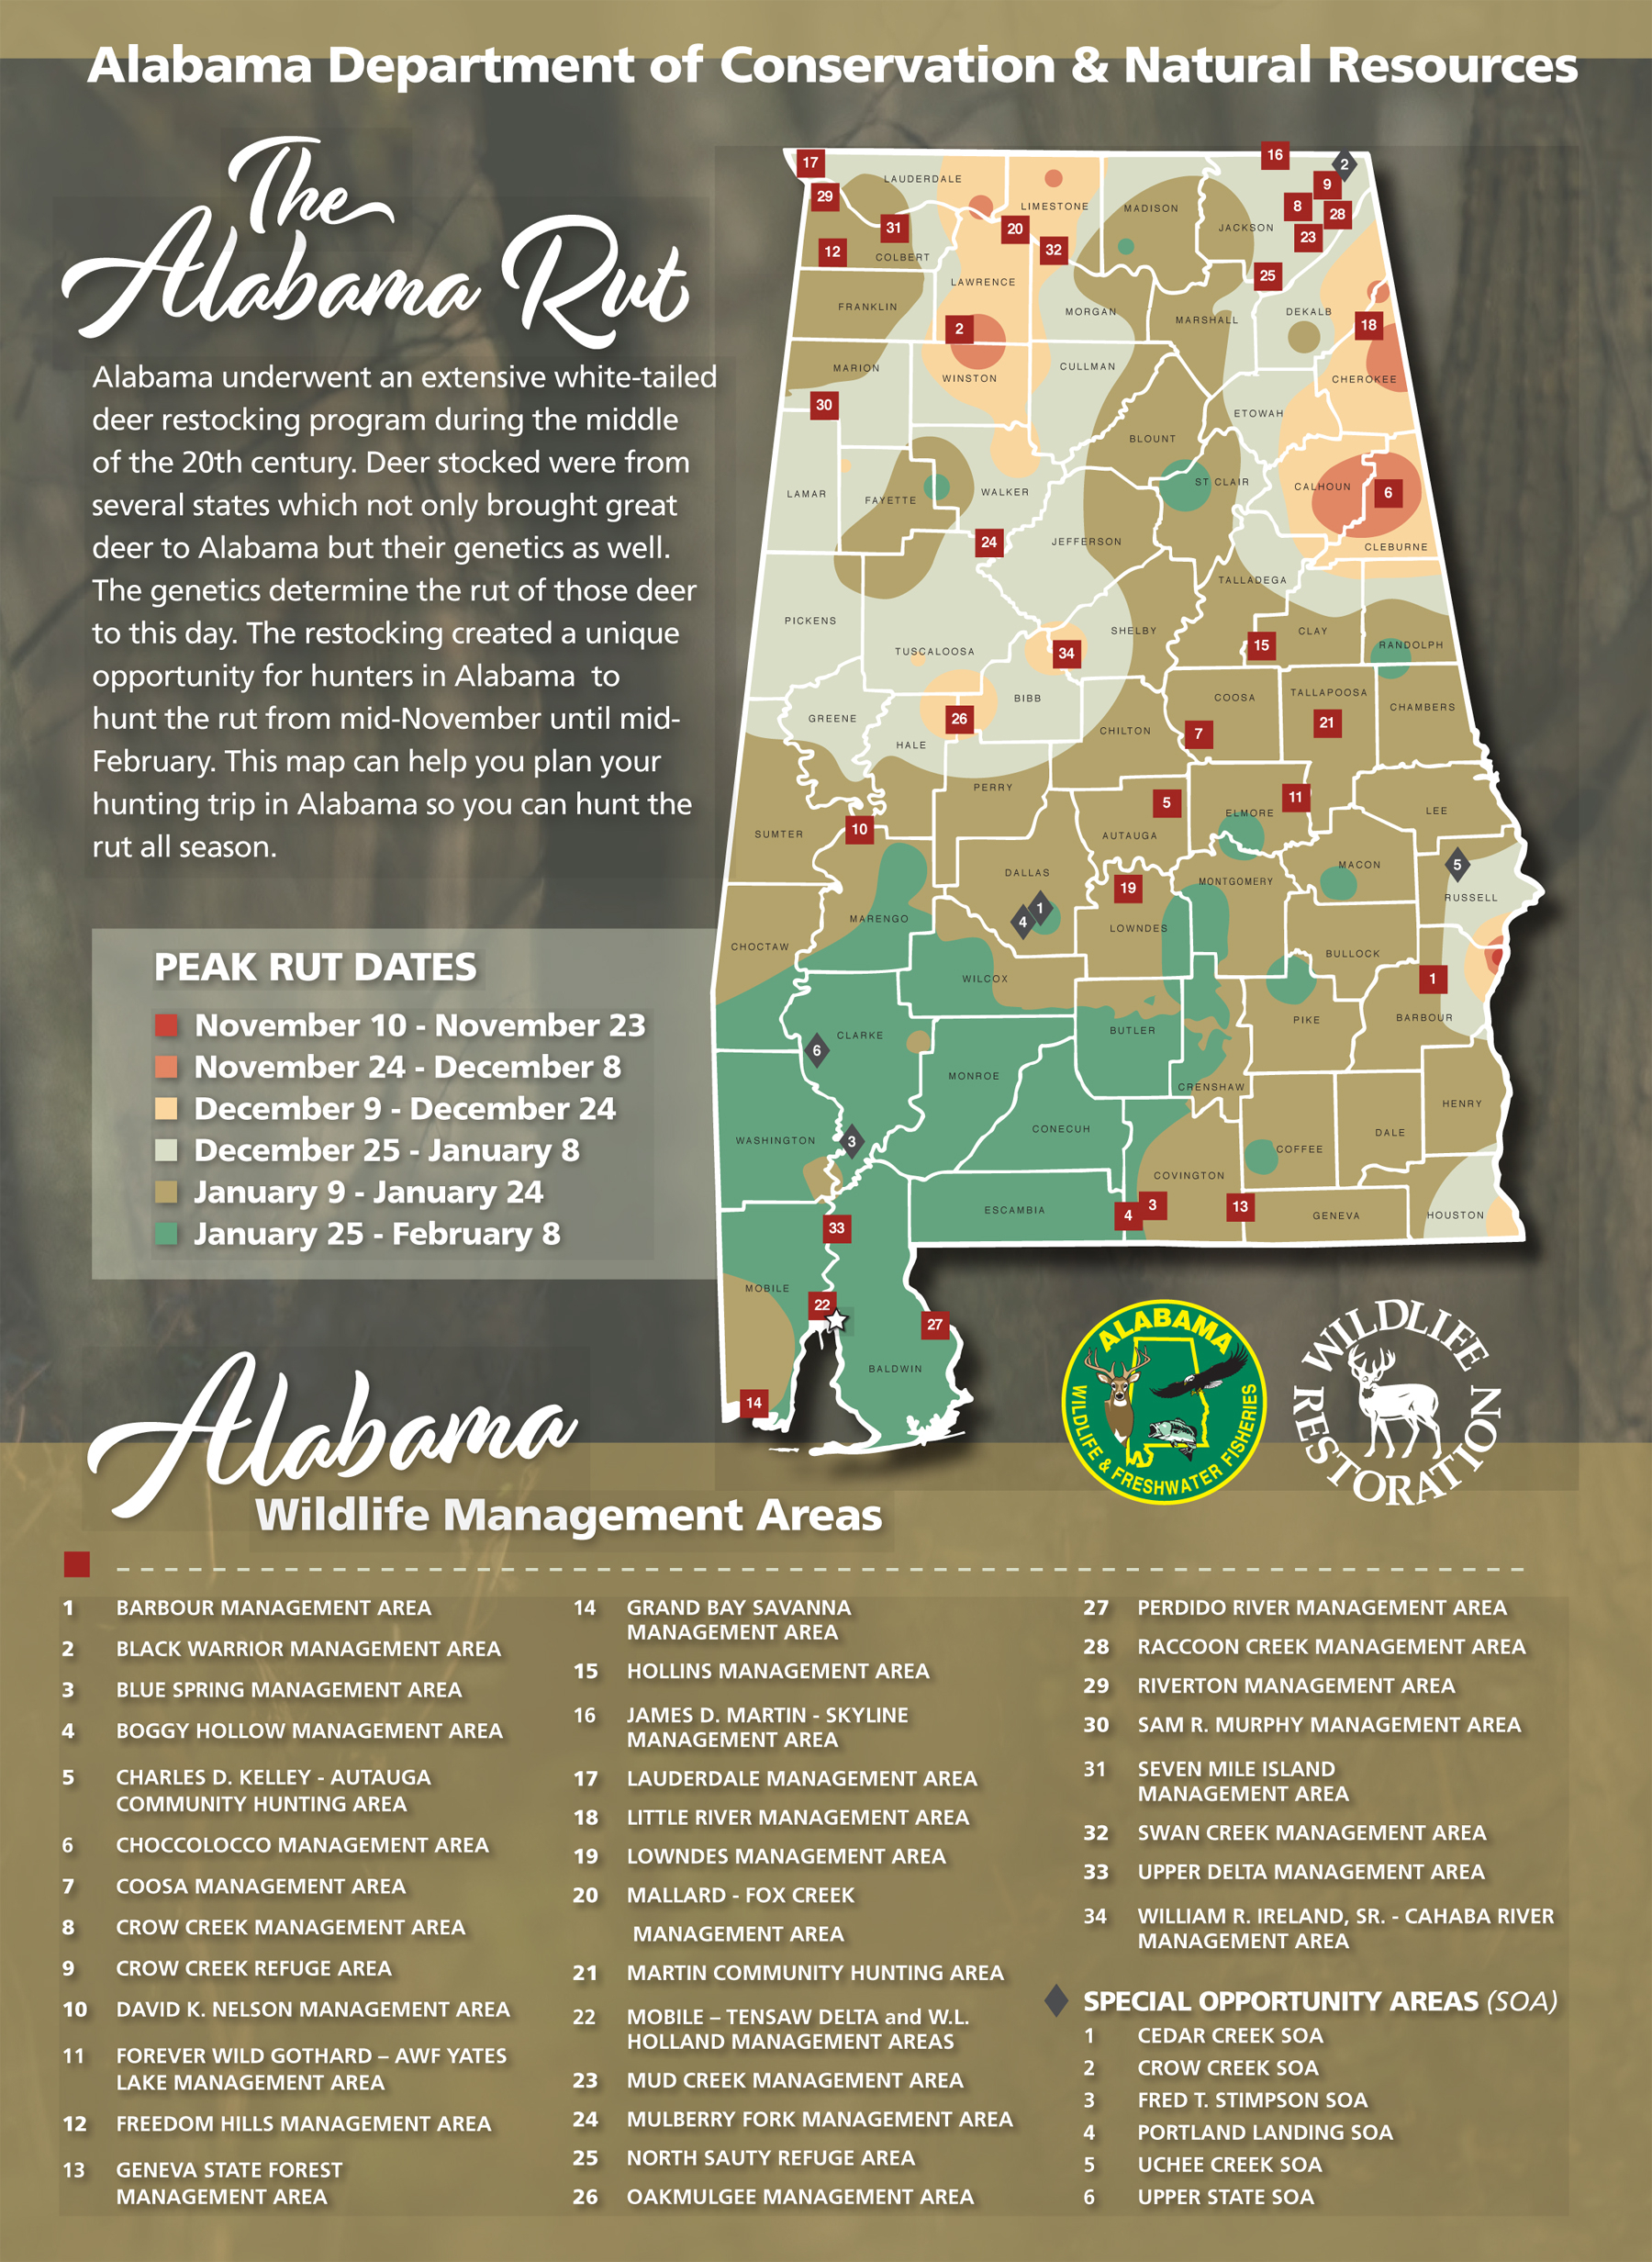 Wff's Rut Map Gives Hunters Useful Planning Tool | Outdoor